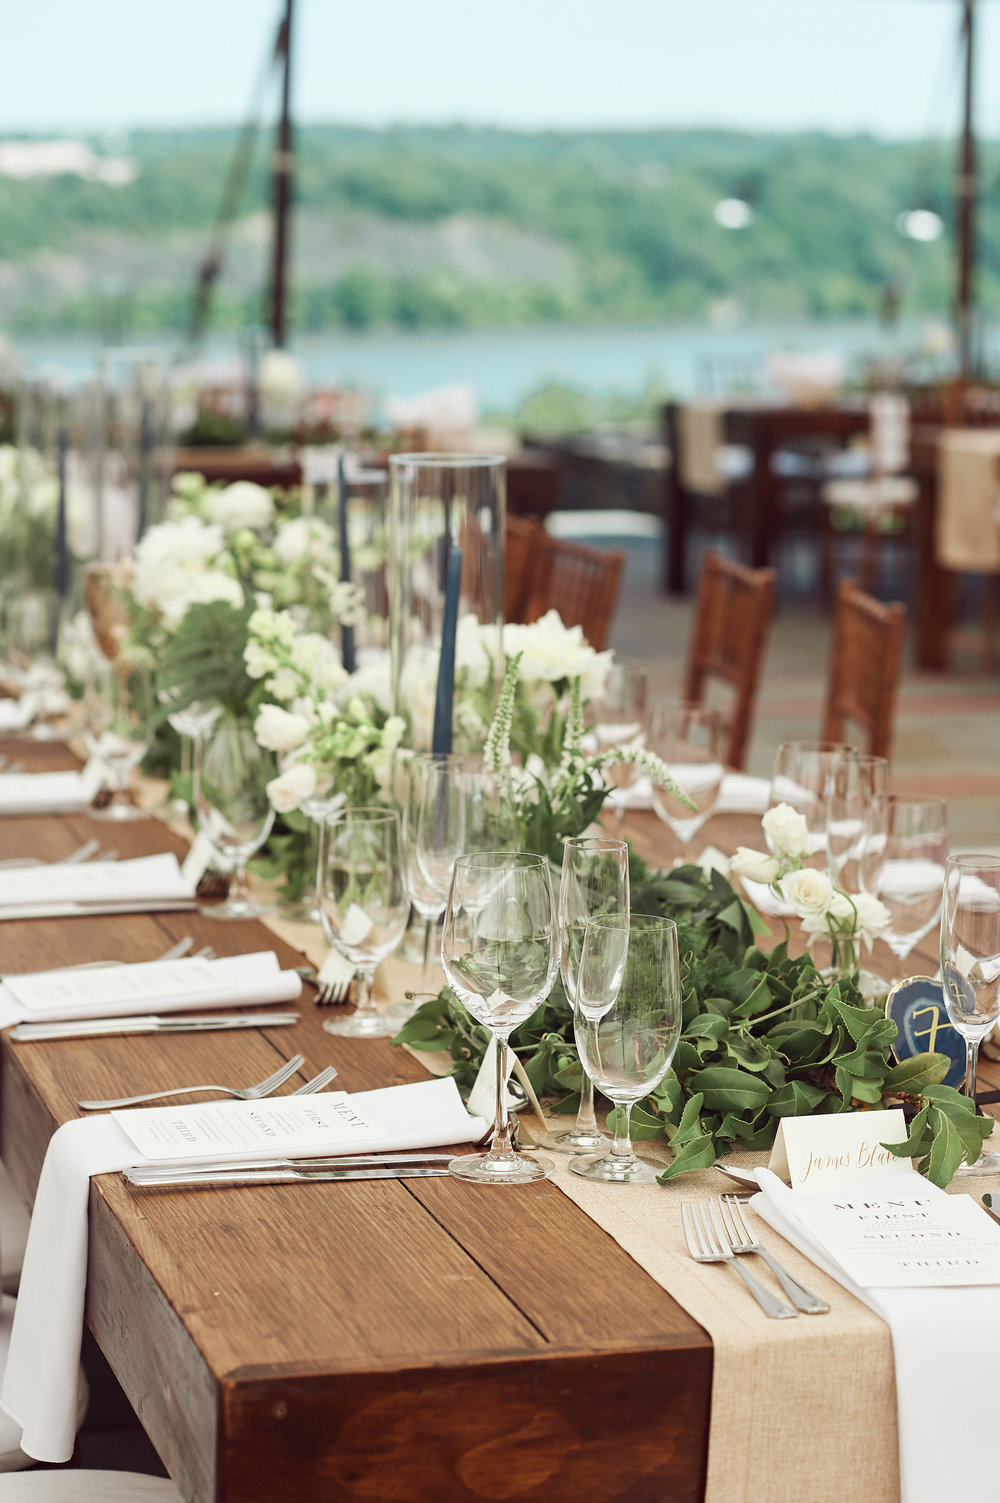 farm tables with white flowers and green garlands